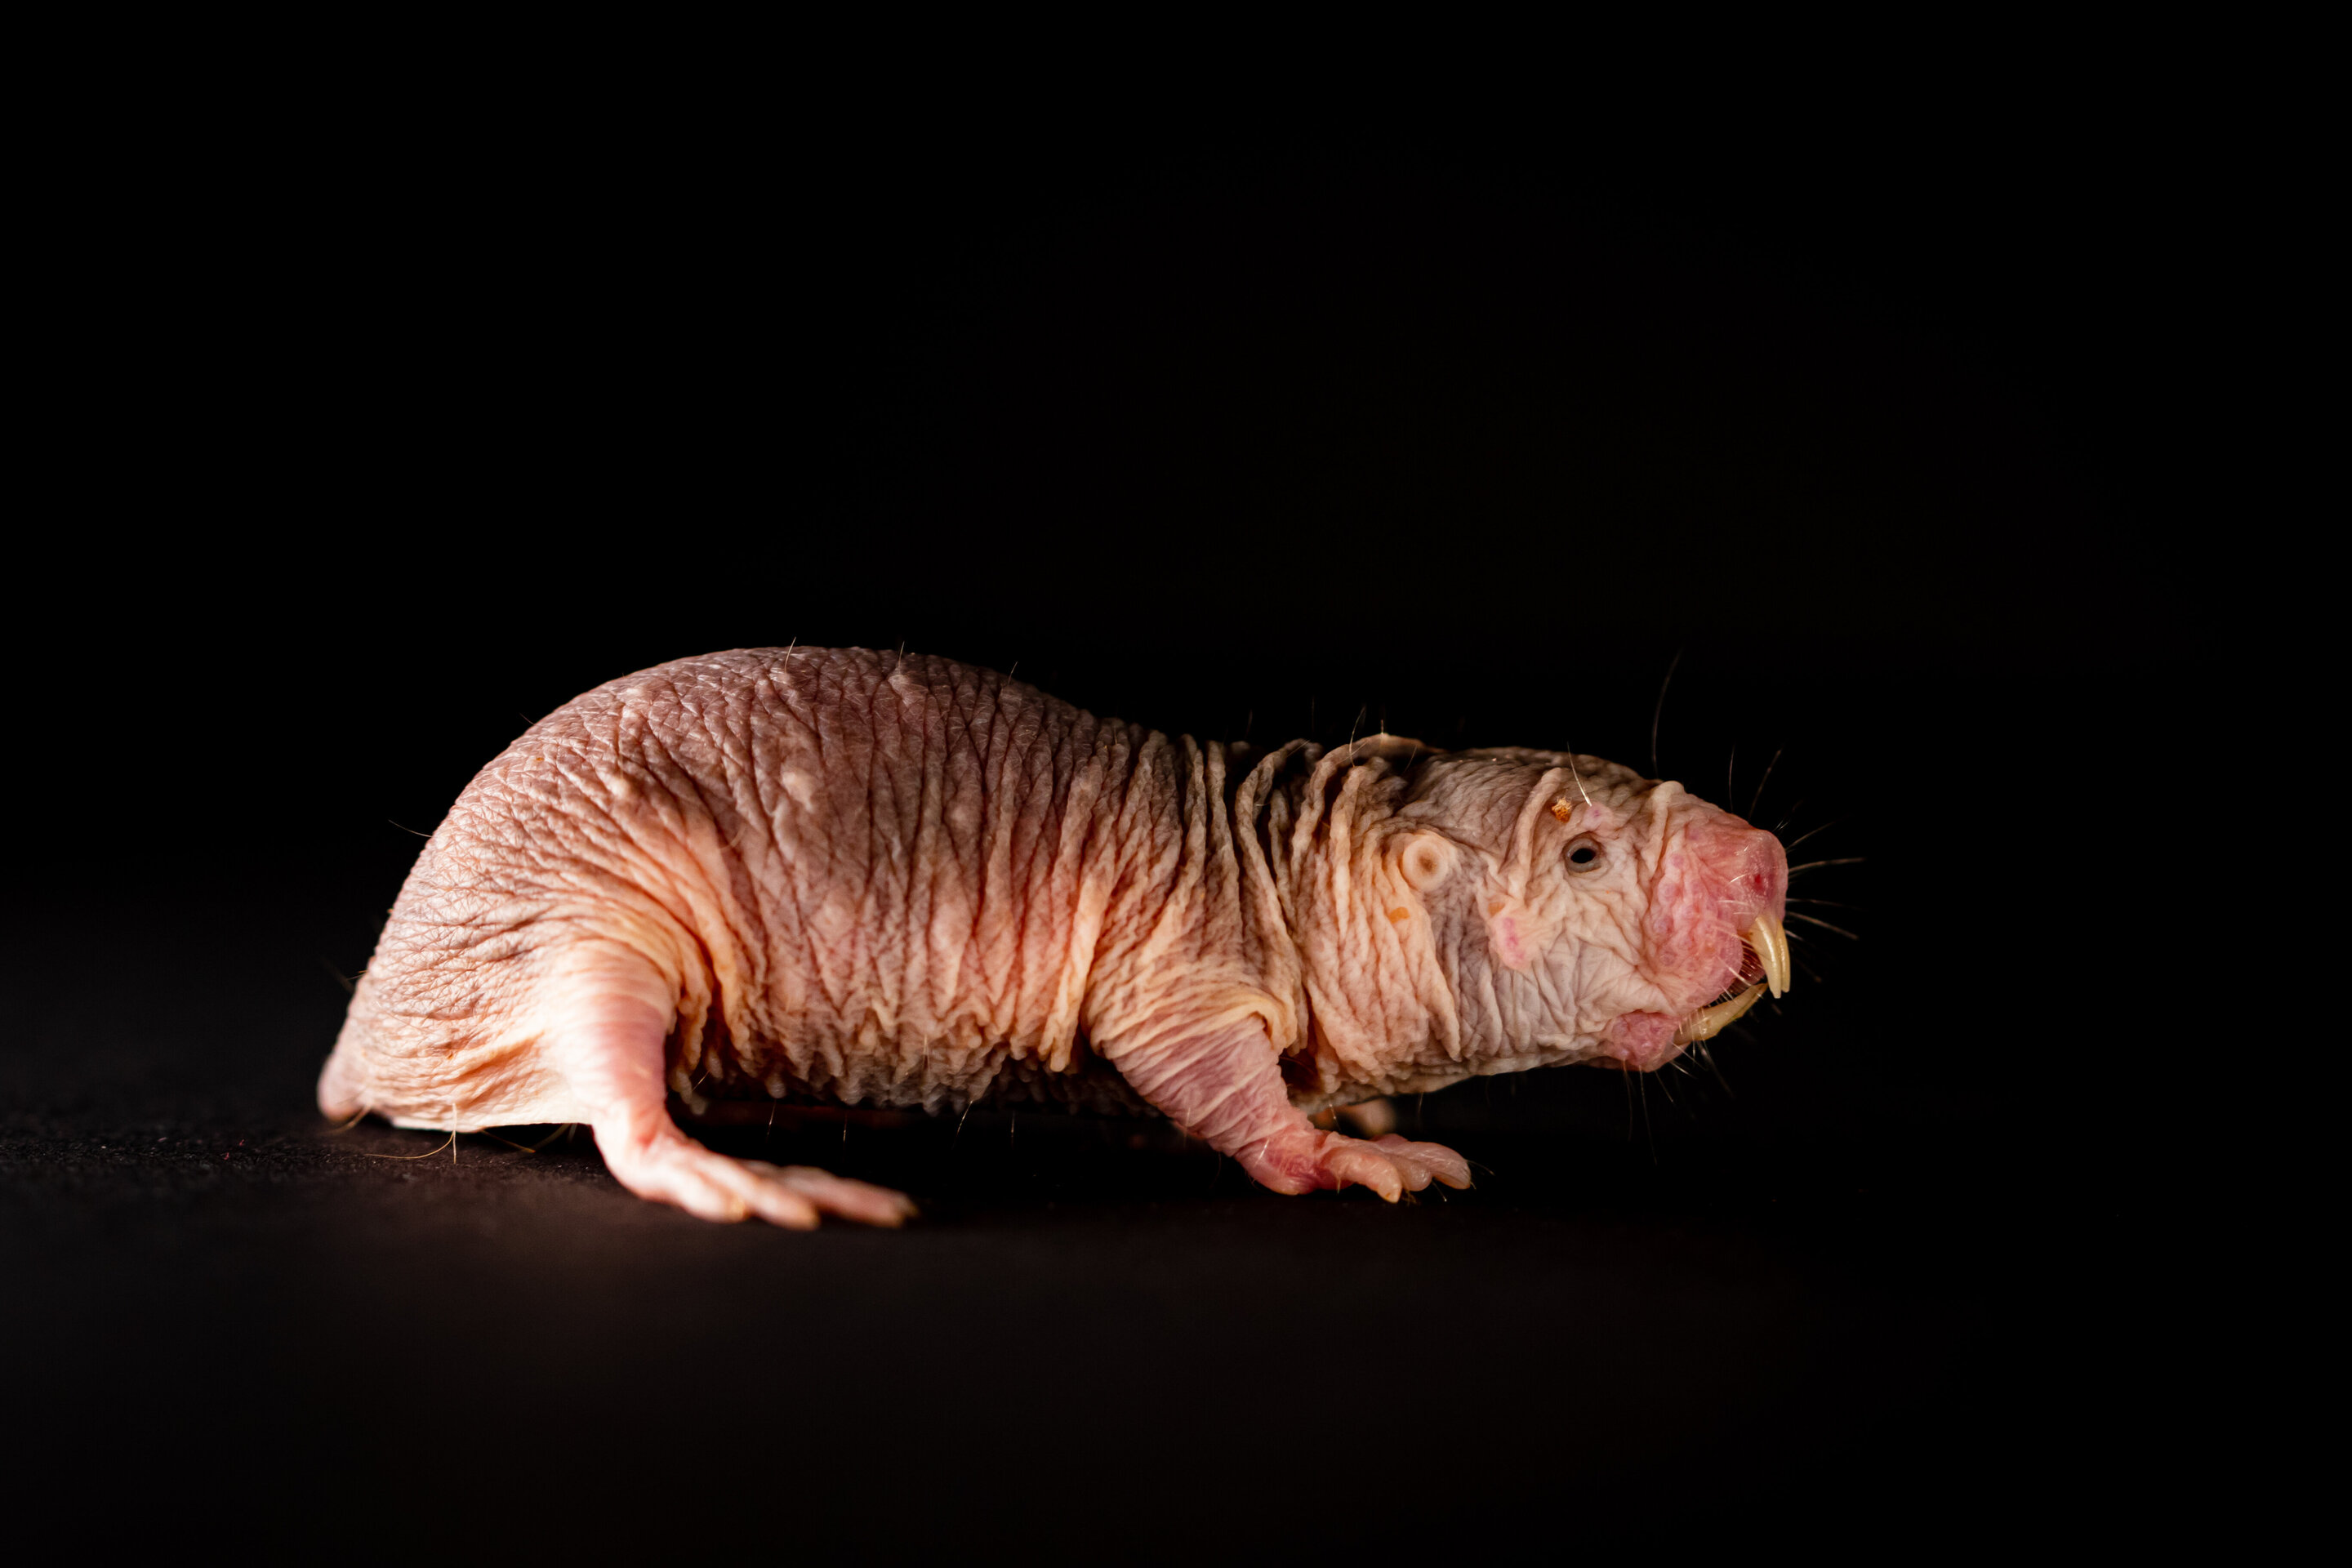 Naked mole rats speak in dialect